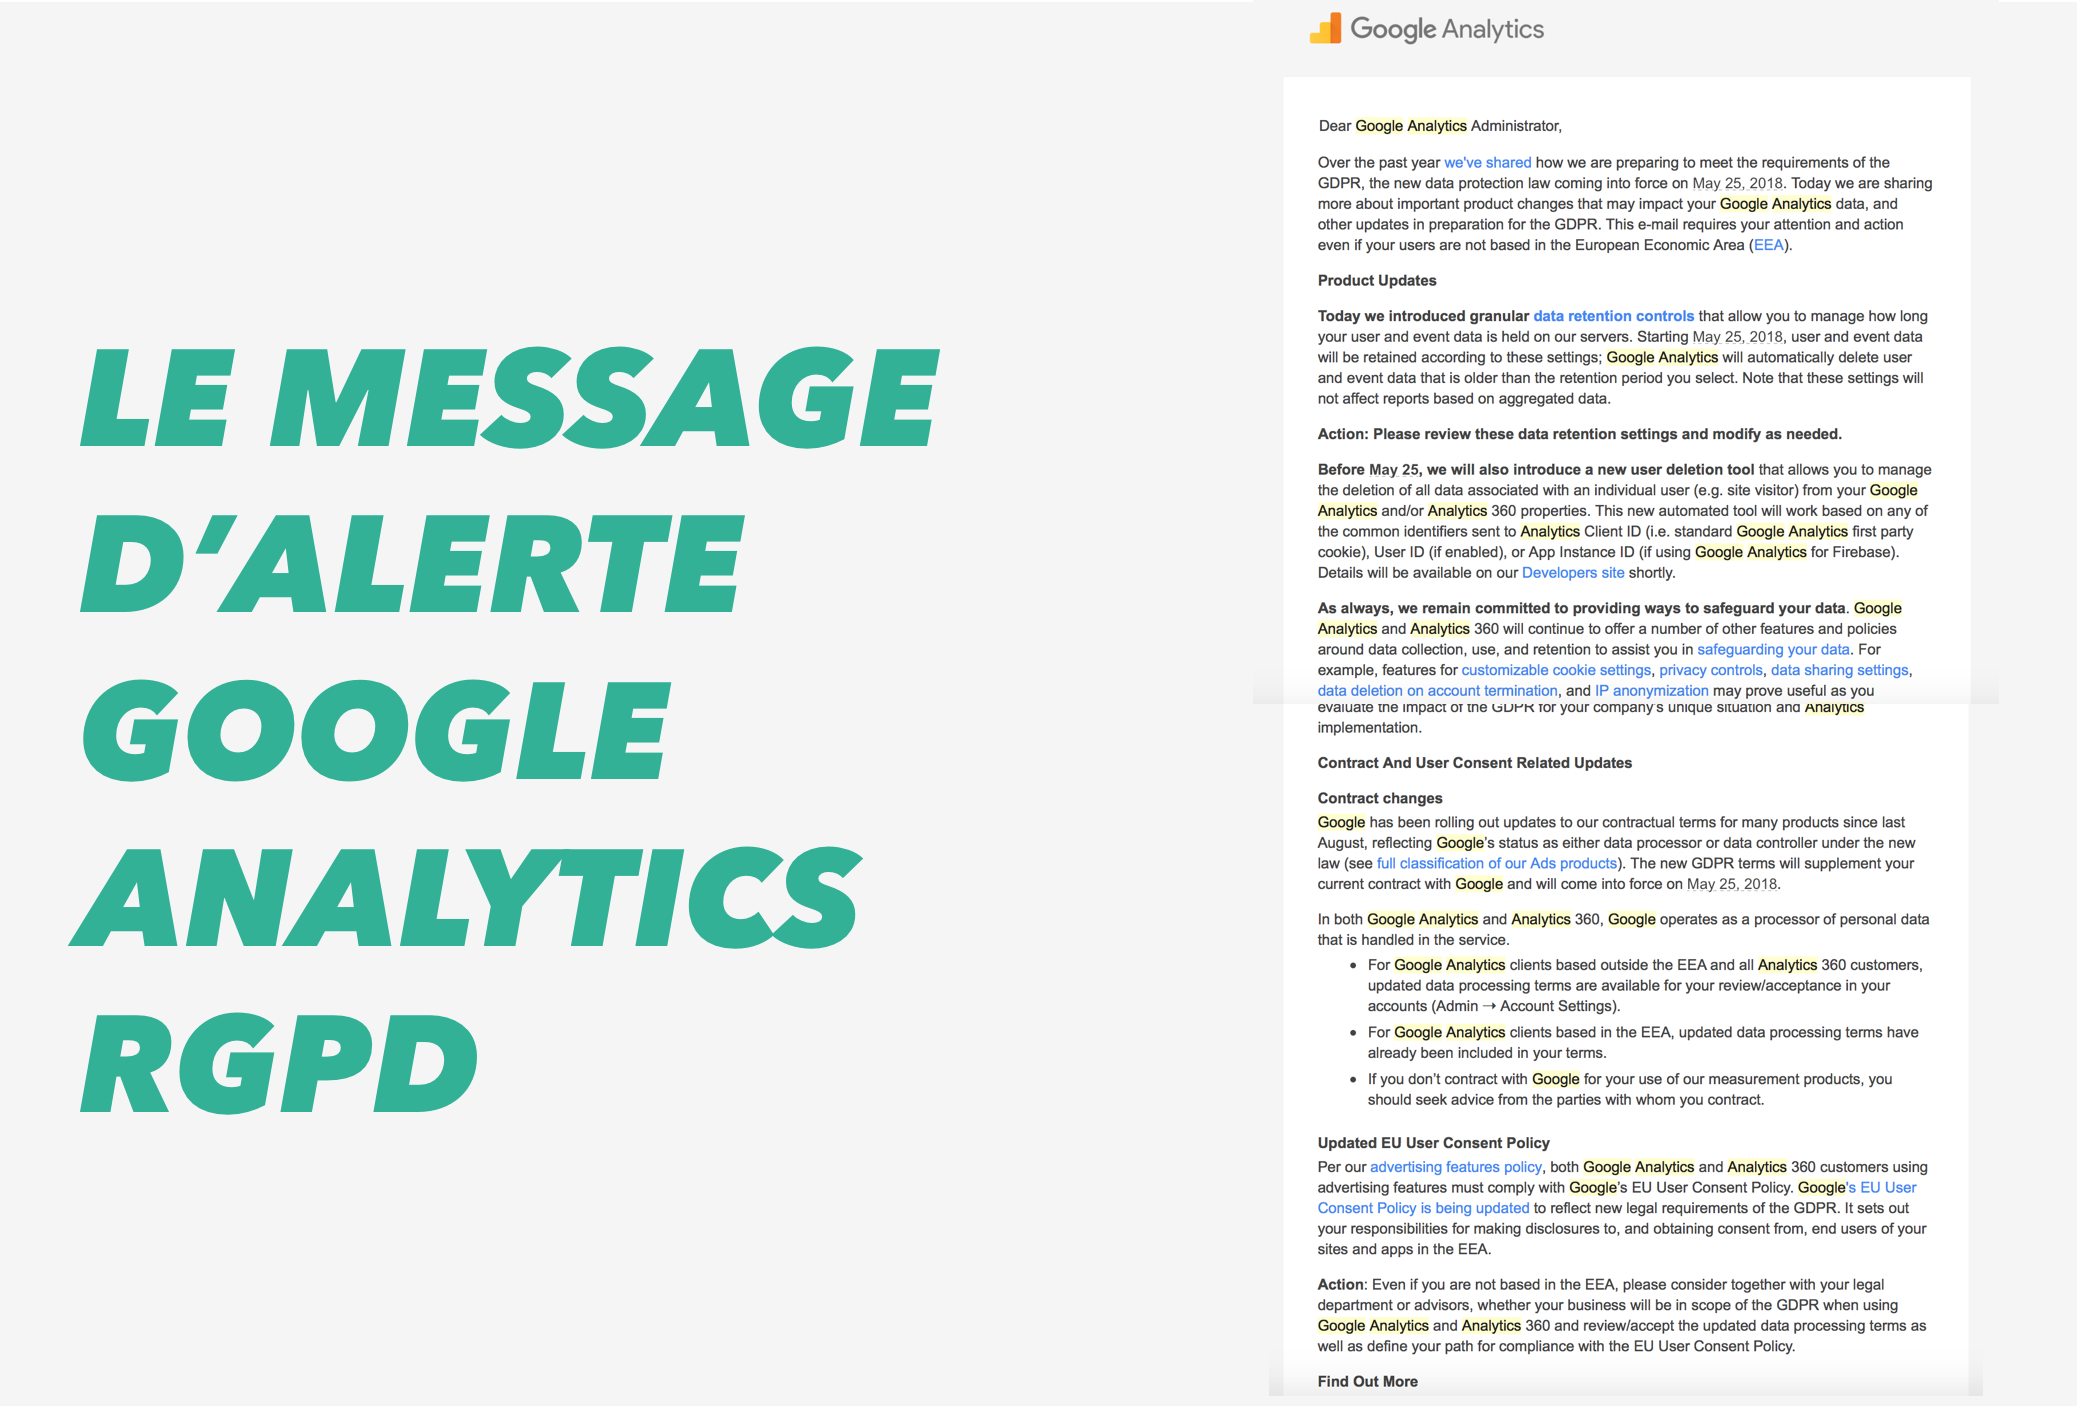 google analytics rgpd